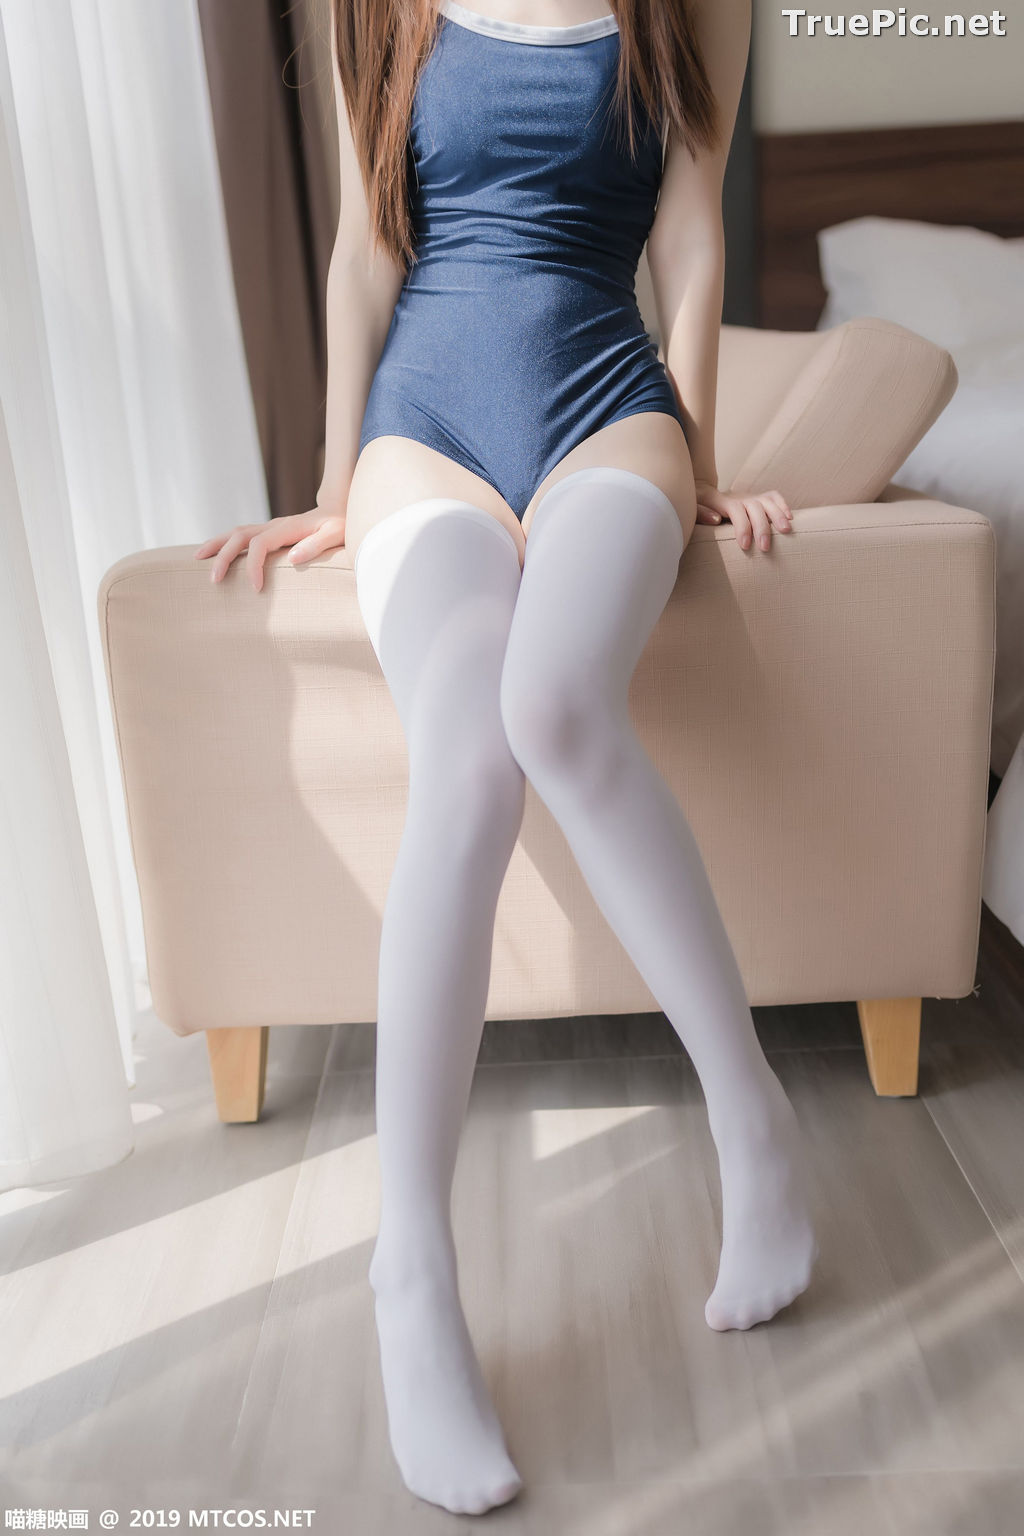 Image [MTCos] 喵糖映画 Vol.036 – Chinese Cute Model – Navy Blue Monokini and White Stockings - TruePic.net - Picture-2